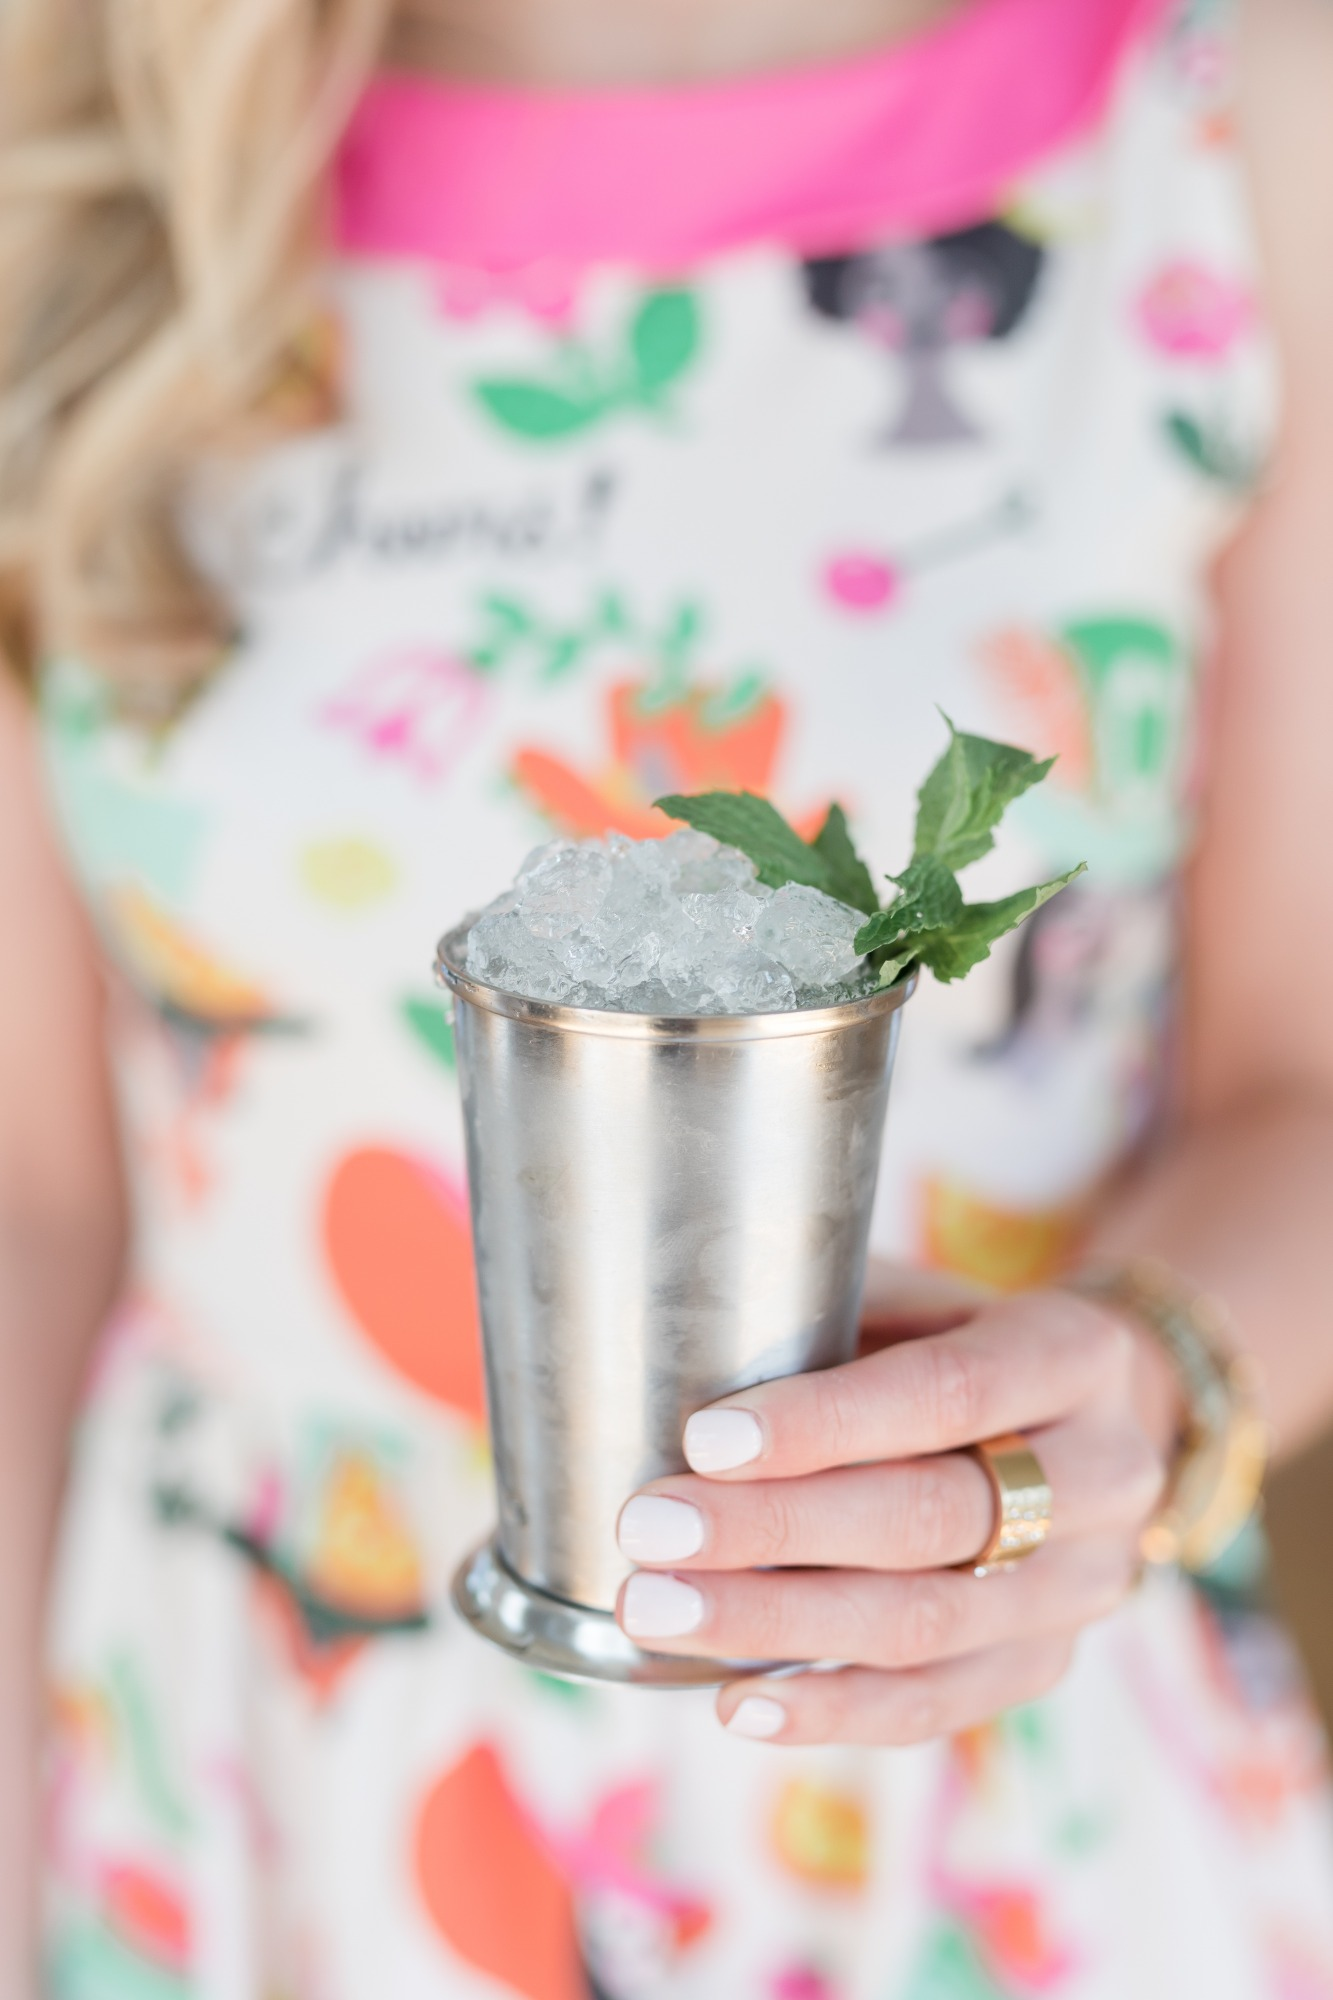 Mint Julep and Dress from Off to the Races Derby Party Styled by Cherry Blossom Events | Black Twine